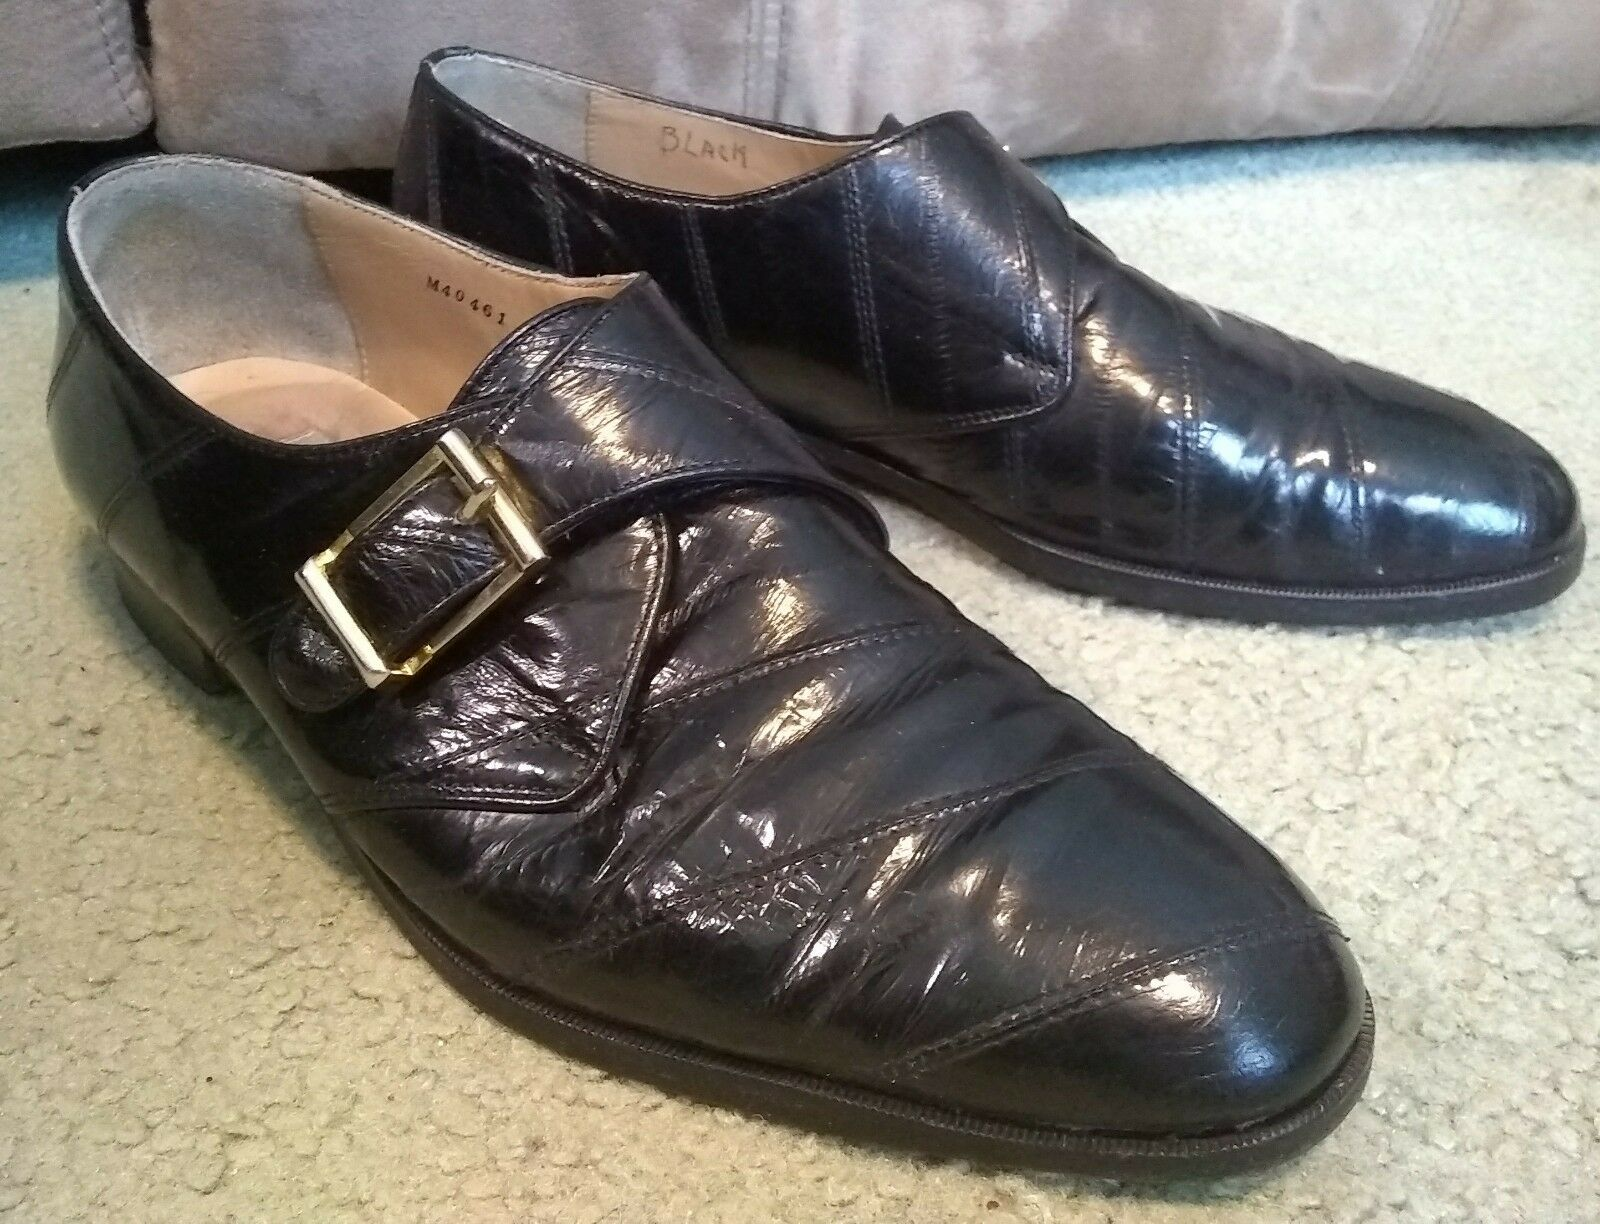 Fabulous Sz 8.5M Black Genuine EEL Skin Carlo Morandi Monk Strap men's shoes